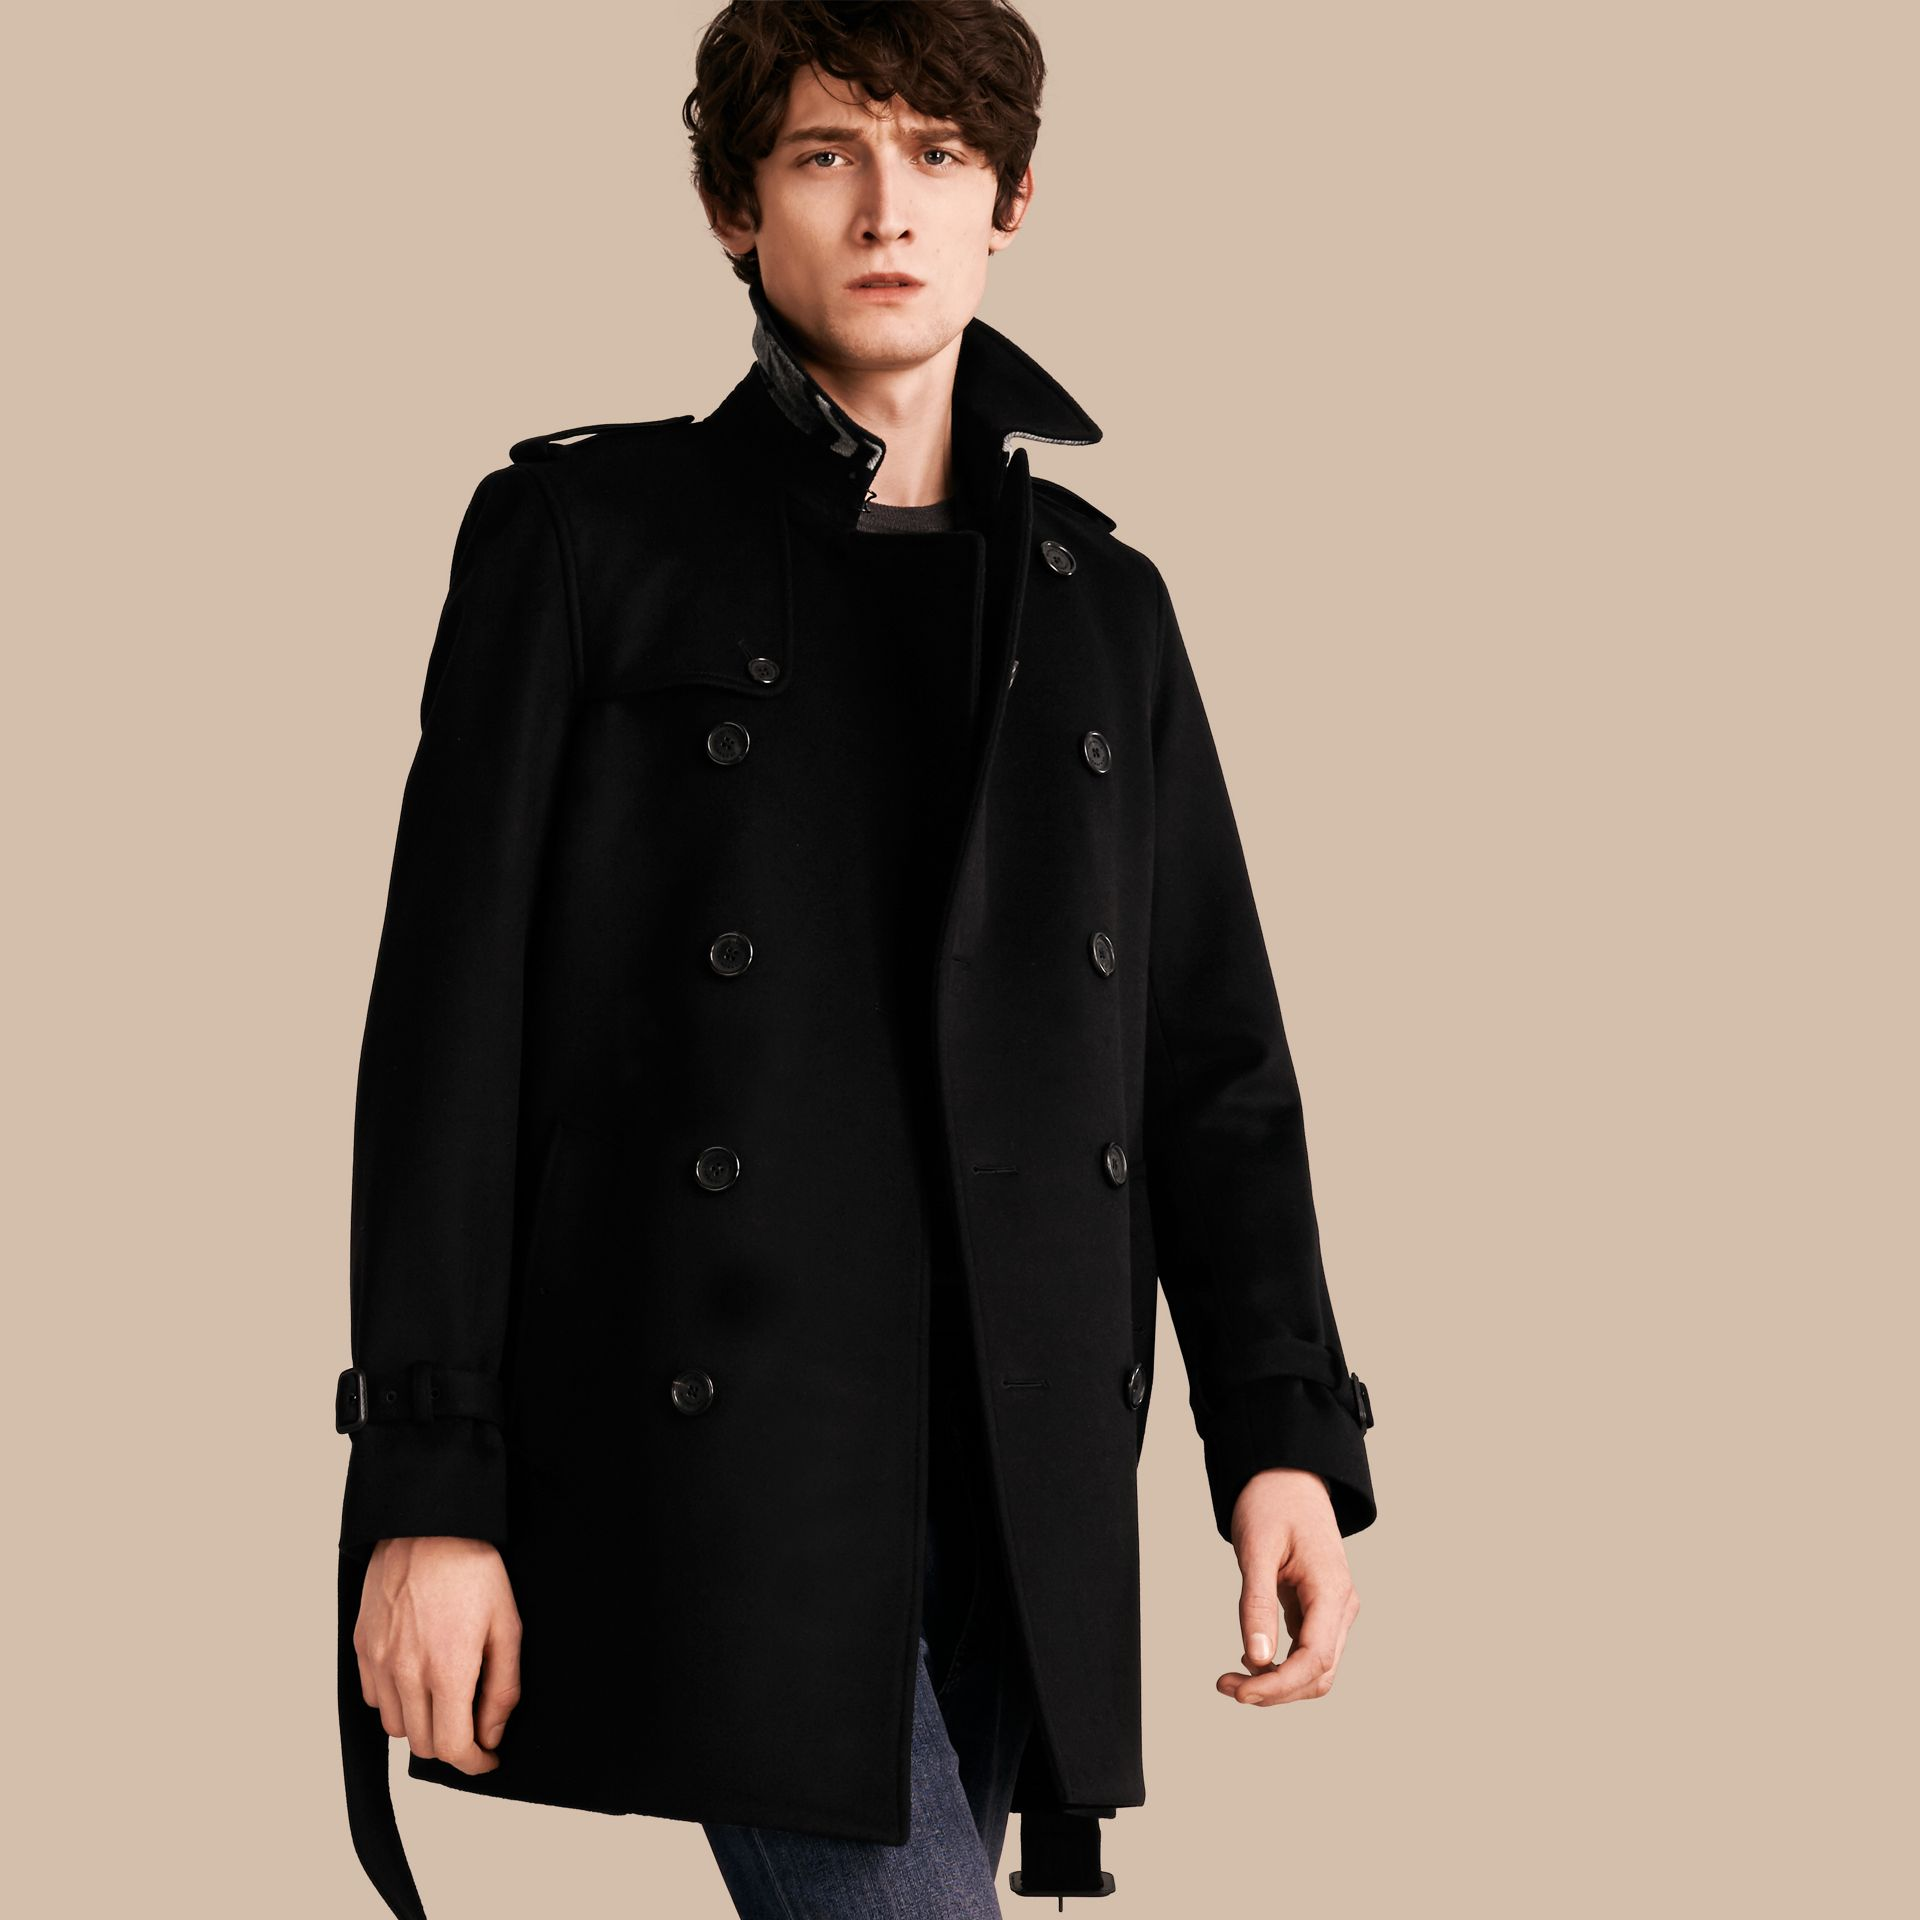 Black Wool Cashmere Trench Coat Black - gallery image 1